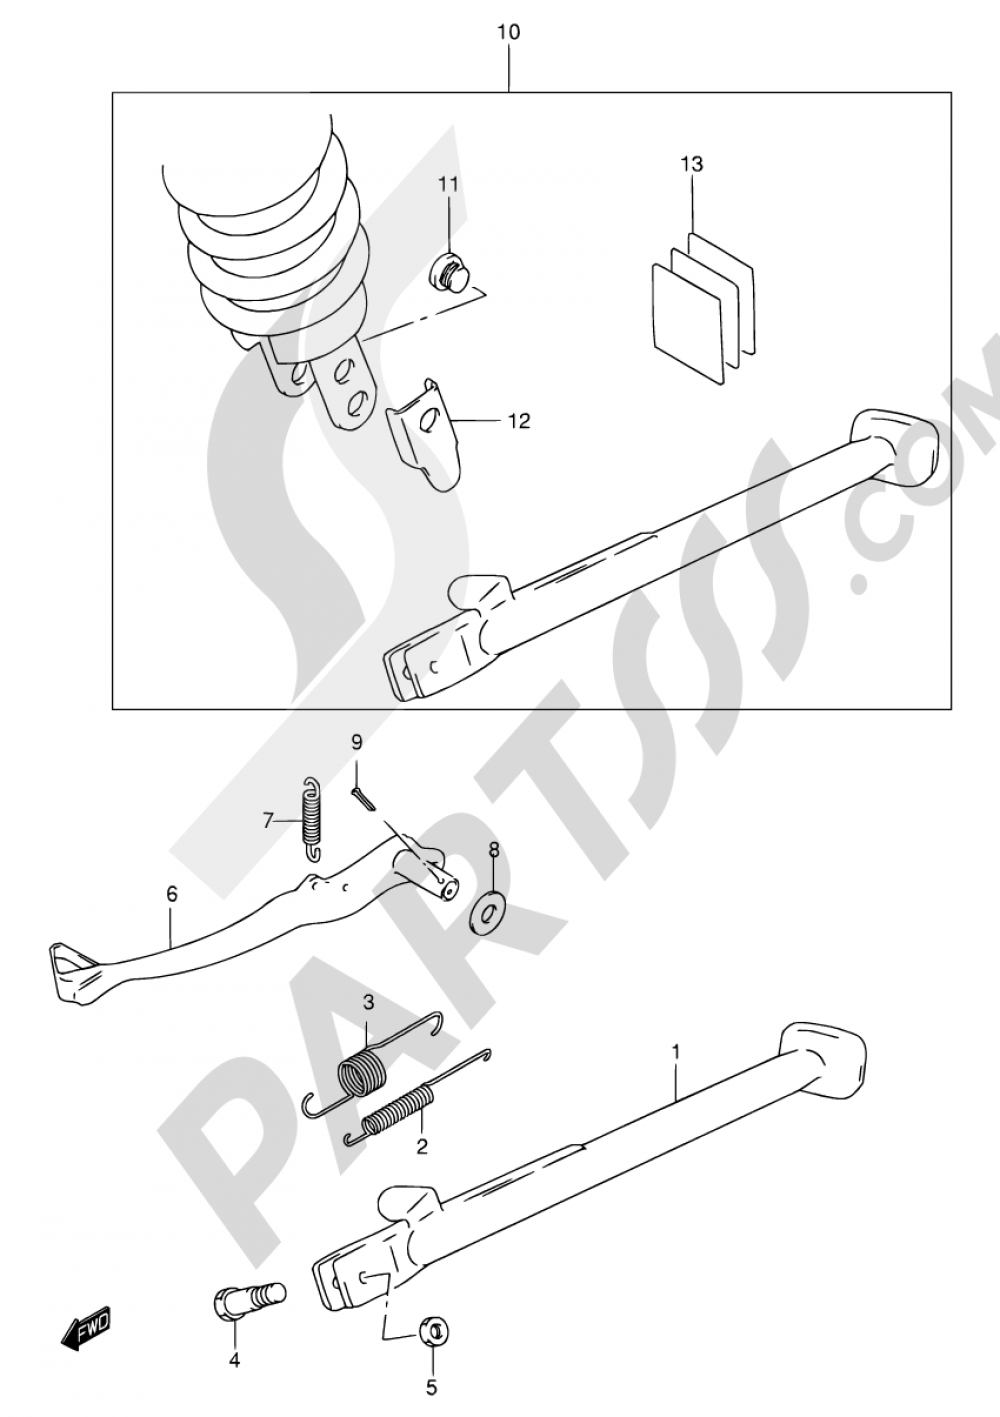 31 Stand Rear Brake Suzuki Dr650se 2001 Wiring Diagram